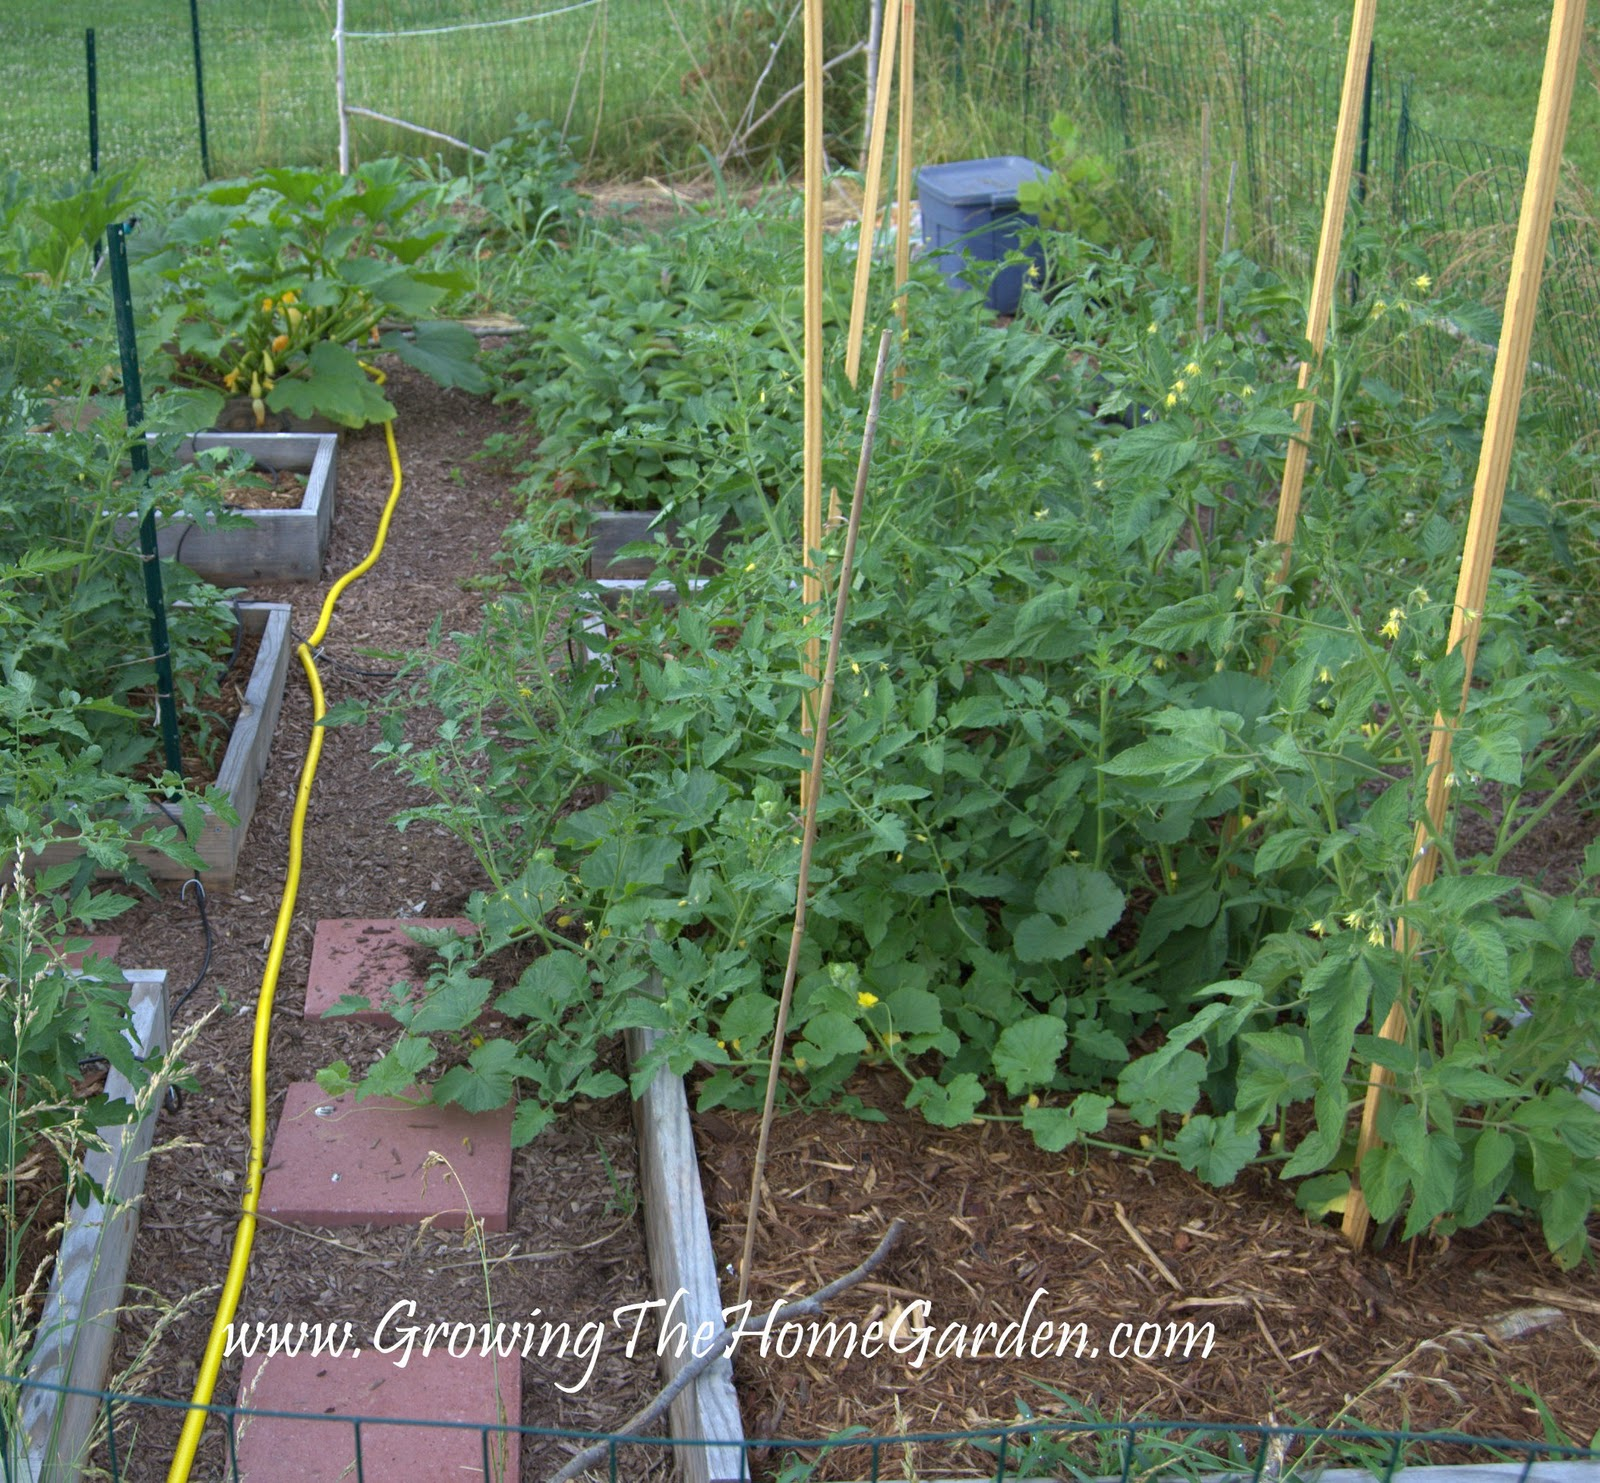 11 tips to consider when designing a raised bed vegetable garden layout - Raised Bed Garden Design Ideas